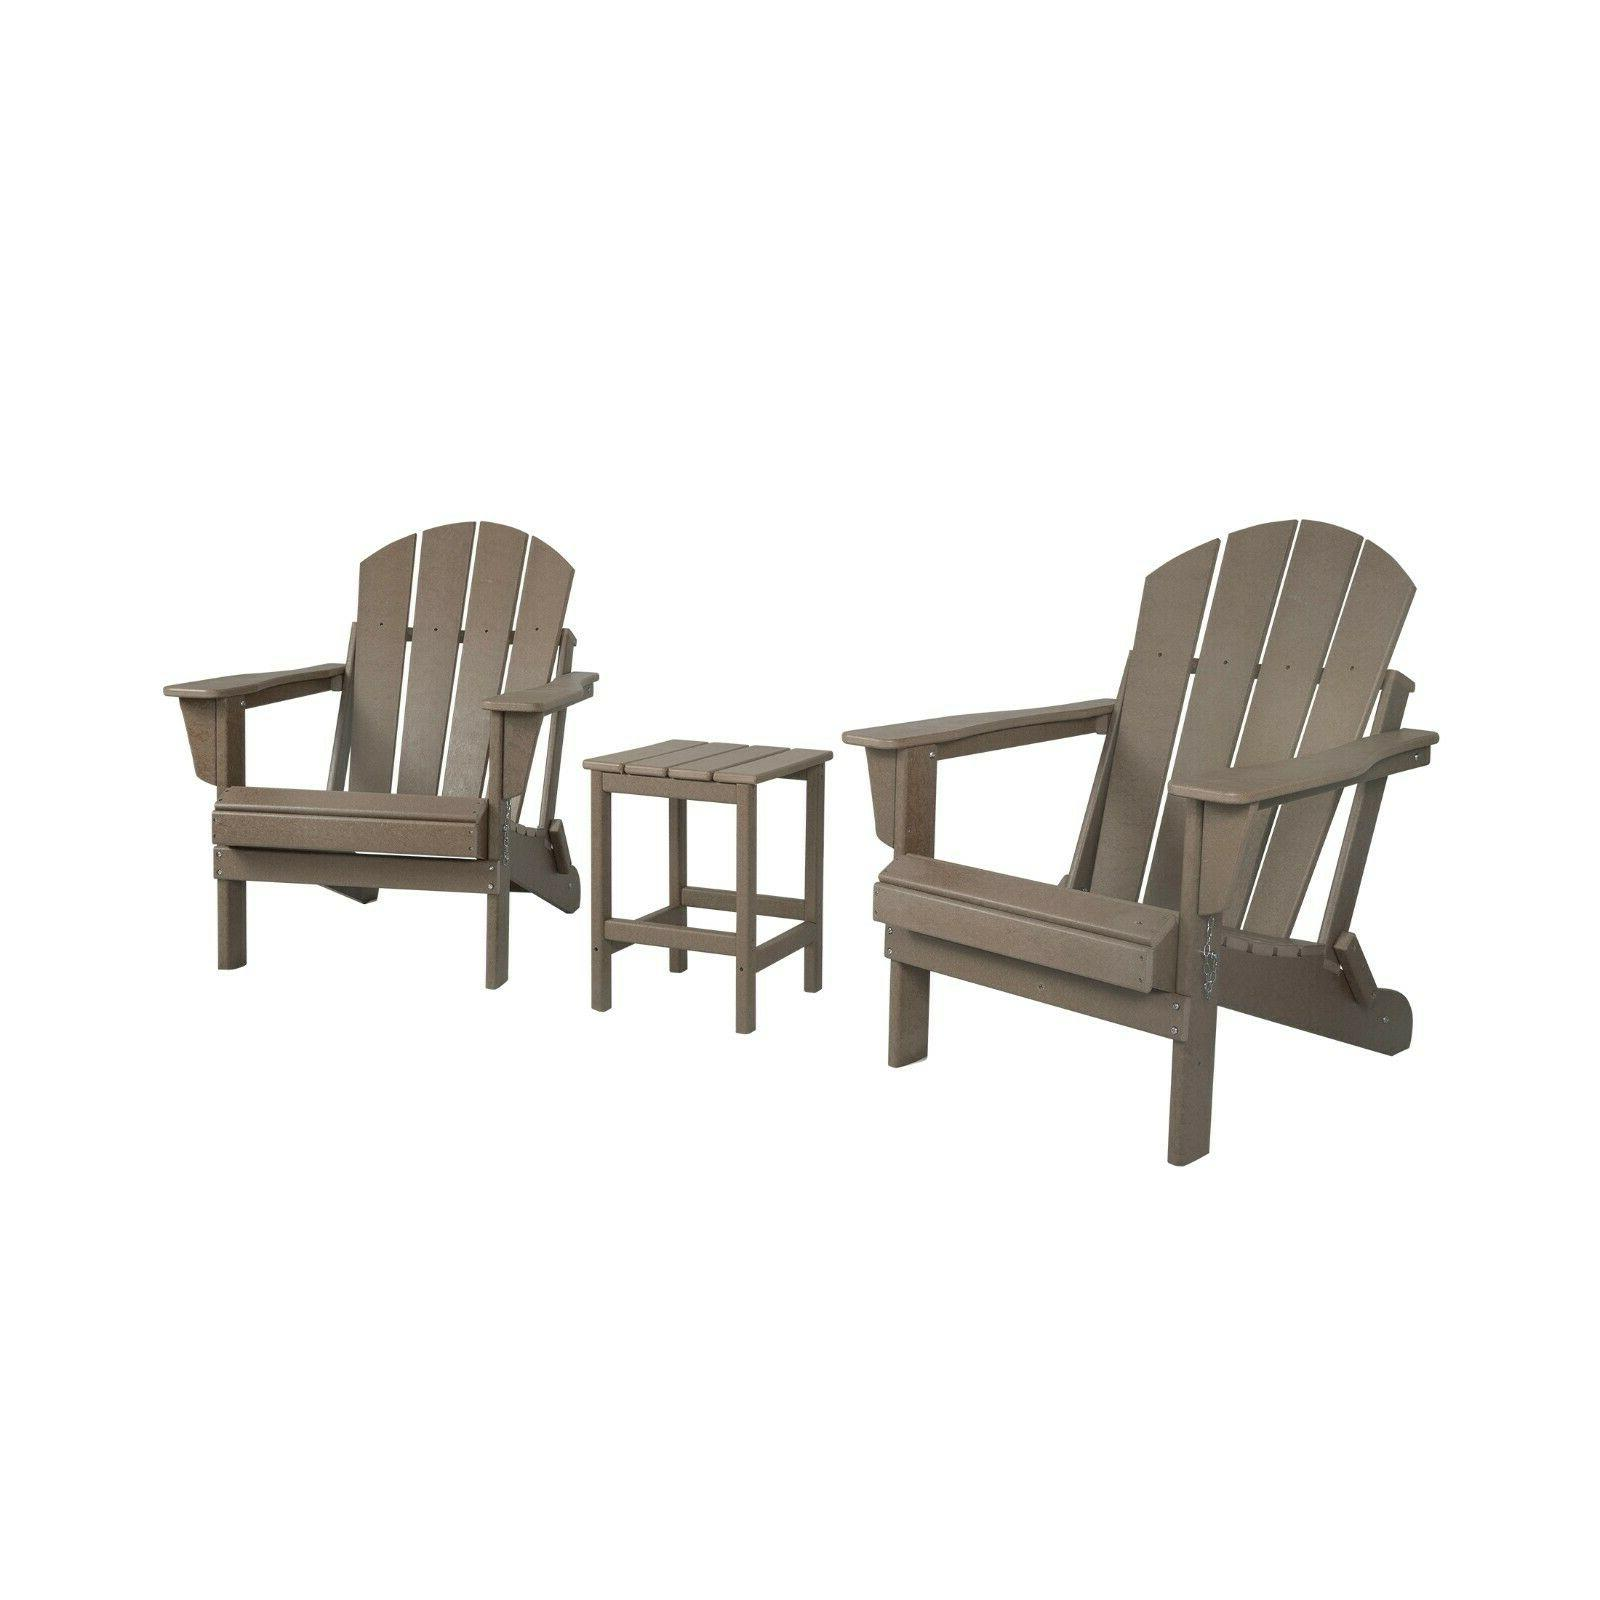 Outdoor Adirondack Chairs w/